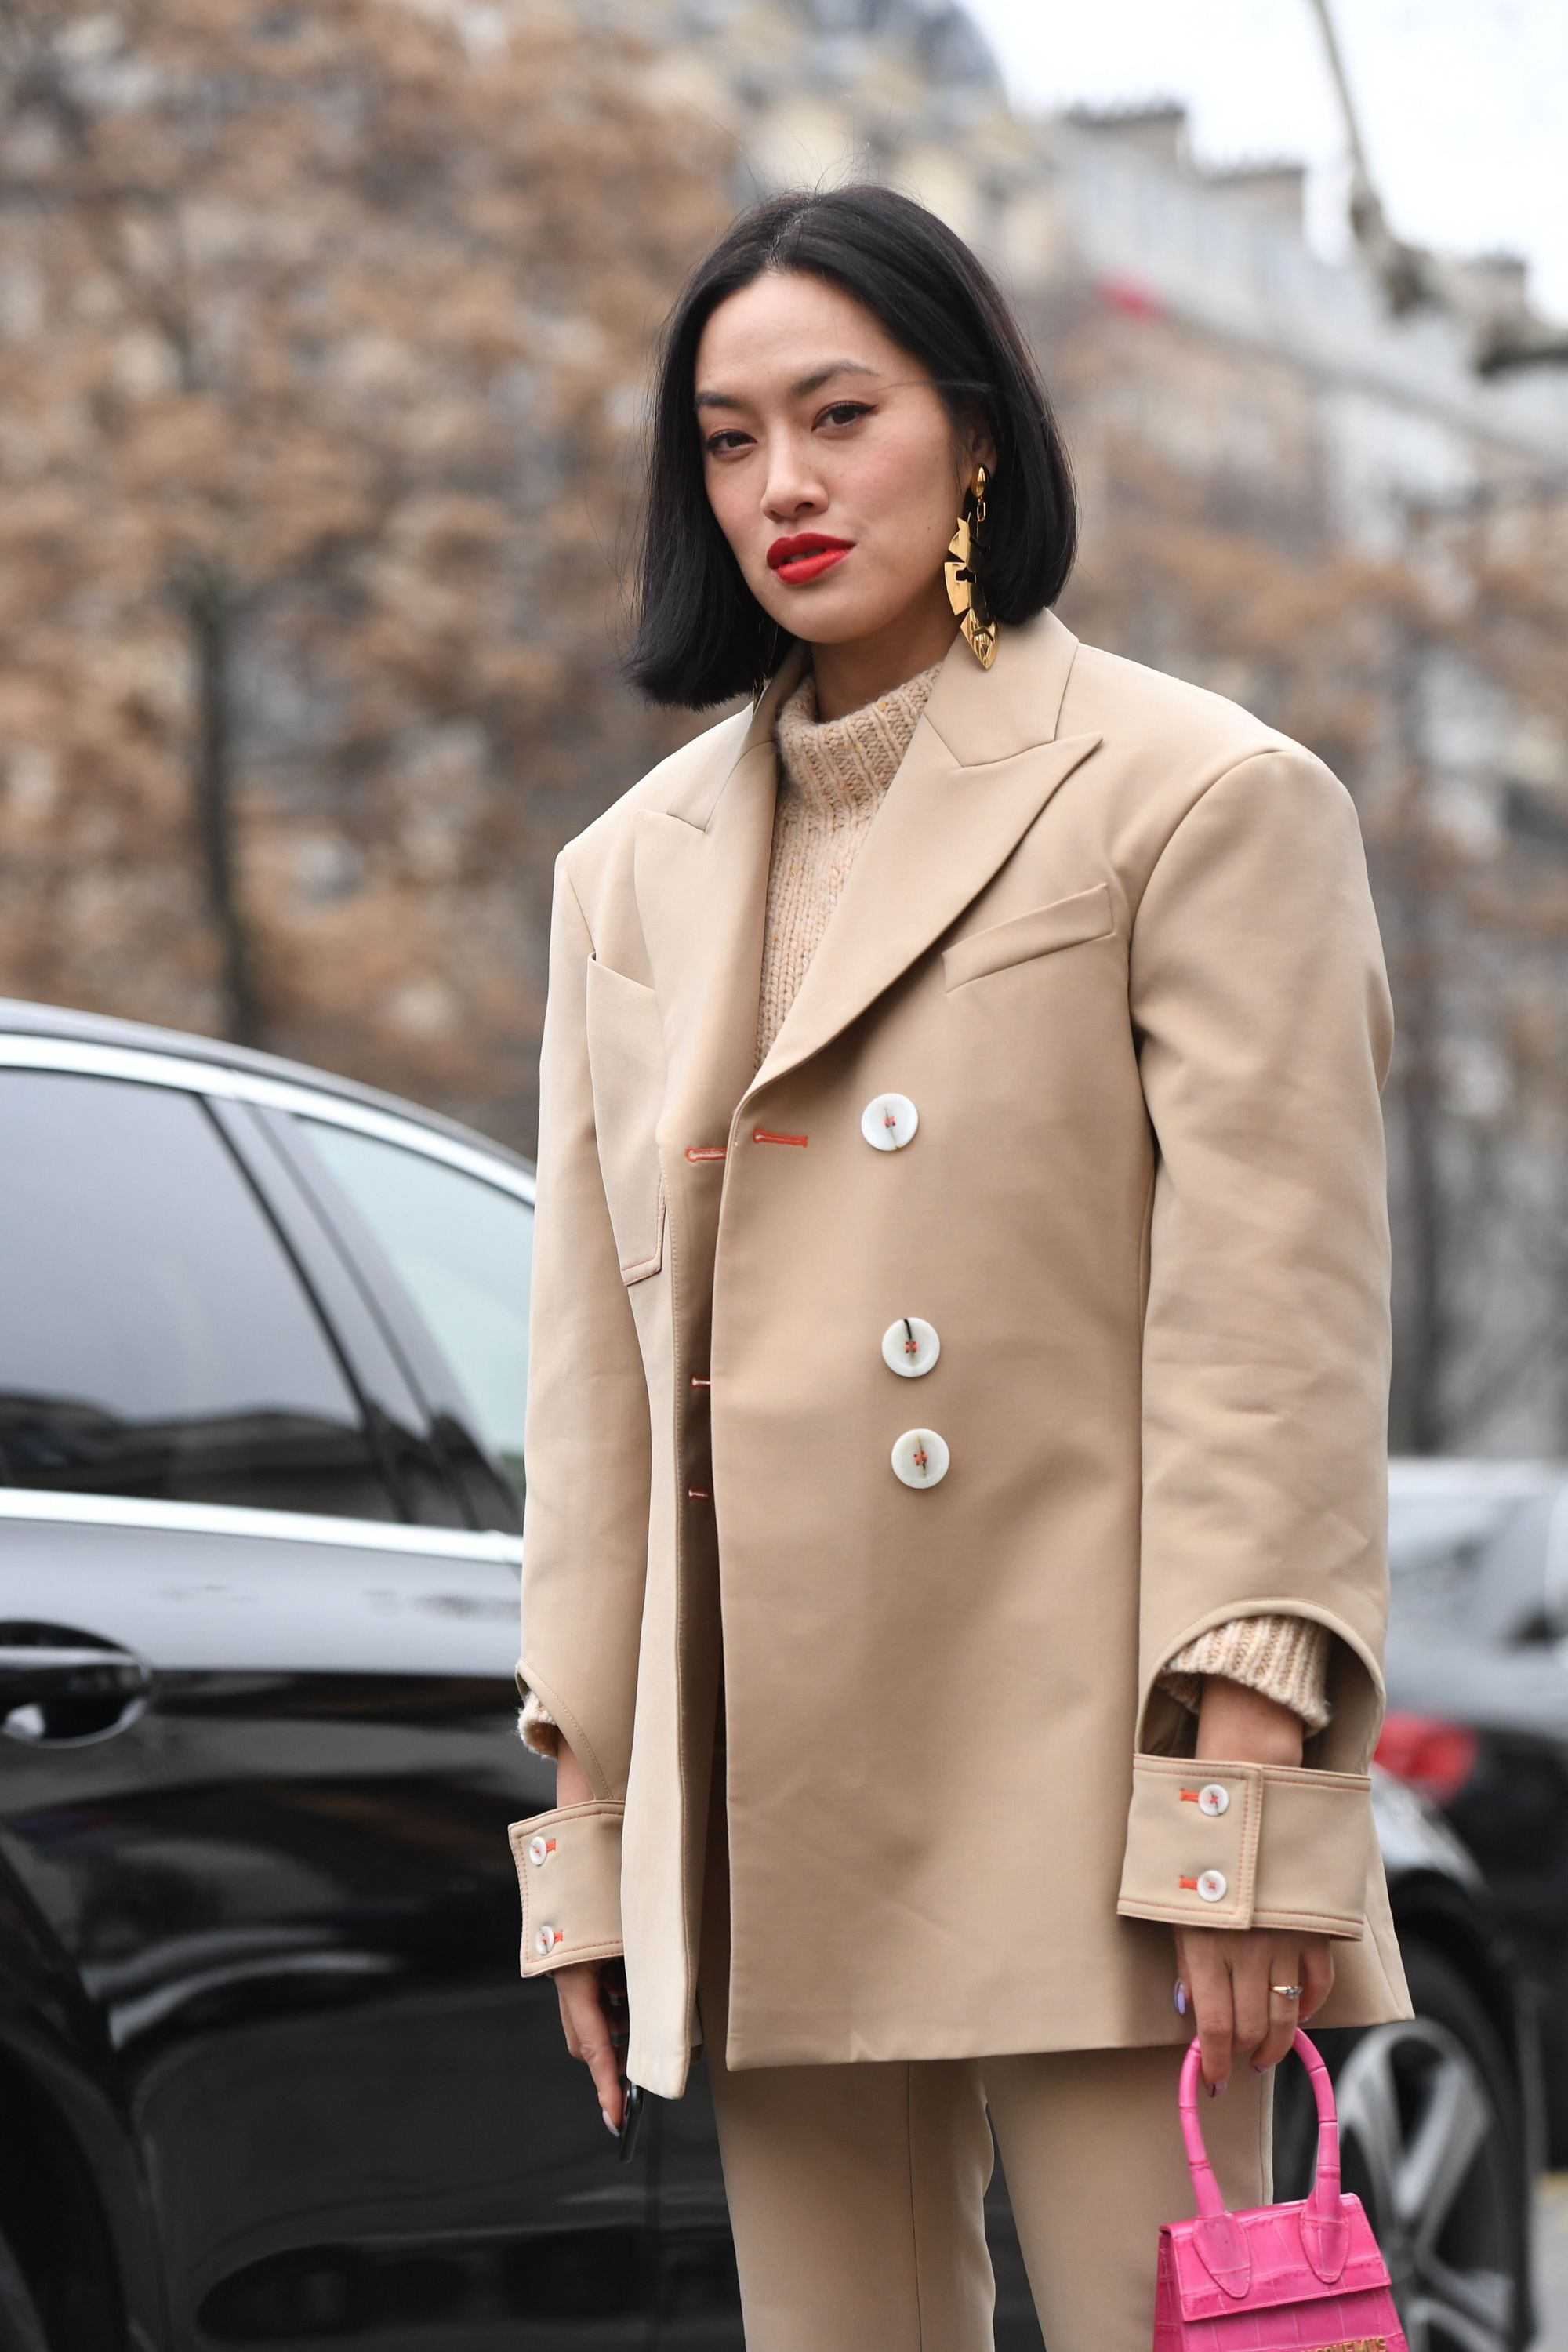 Hair trends 2019: Street style of woman with straight dark brown jawline bob wearing a beige jacket.